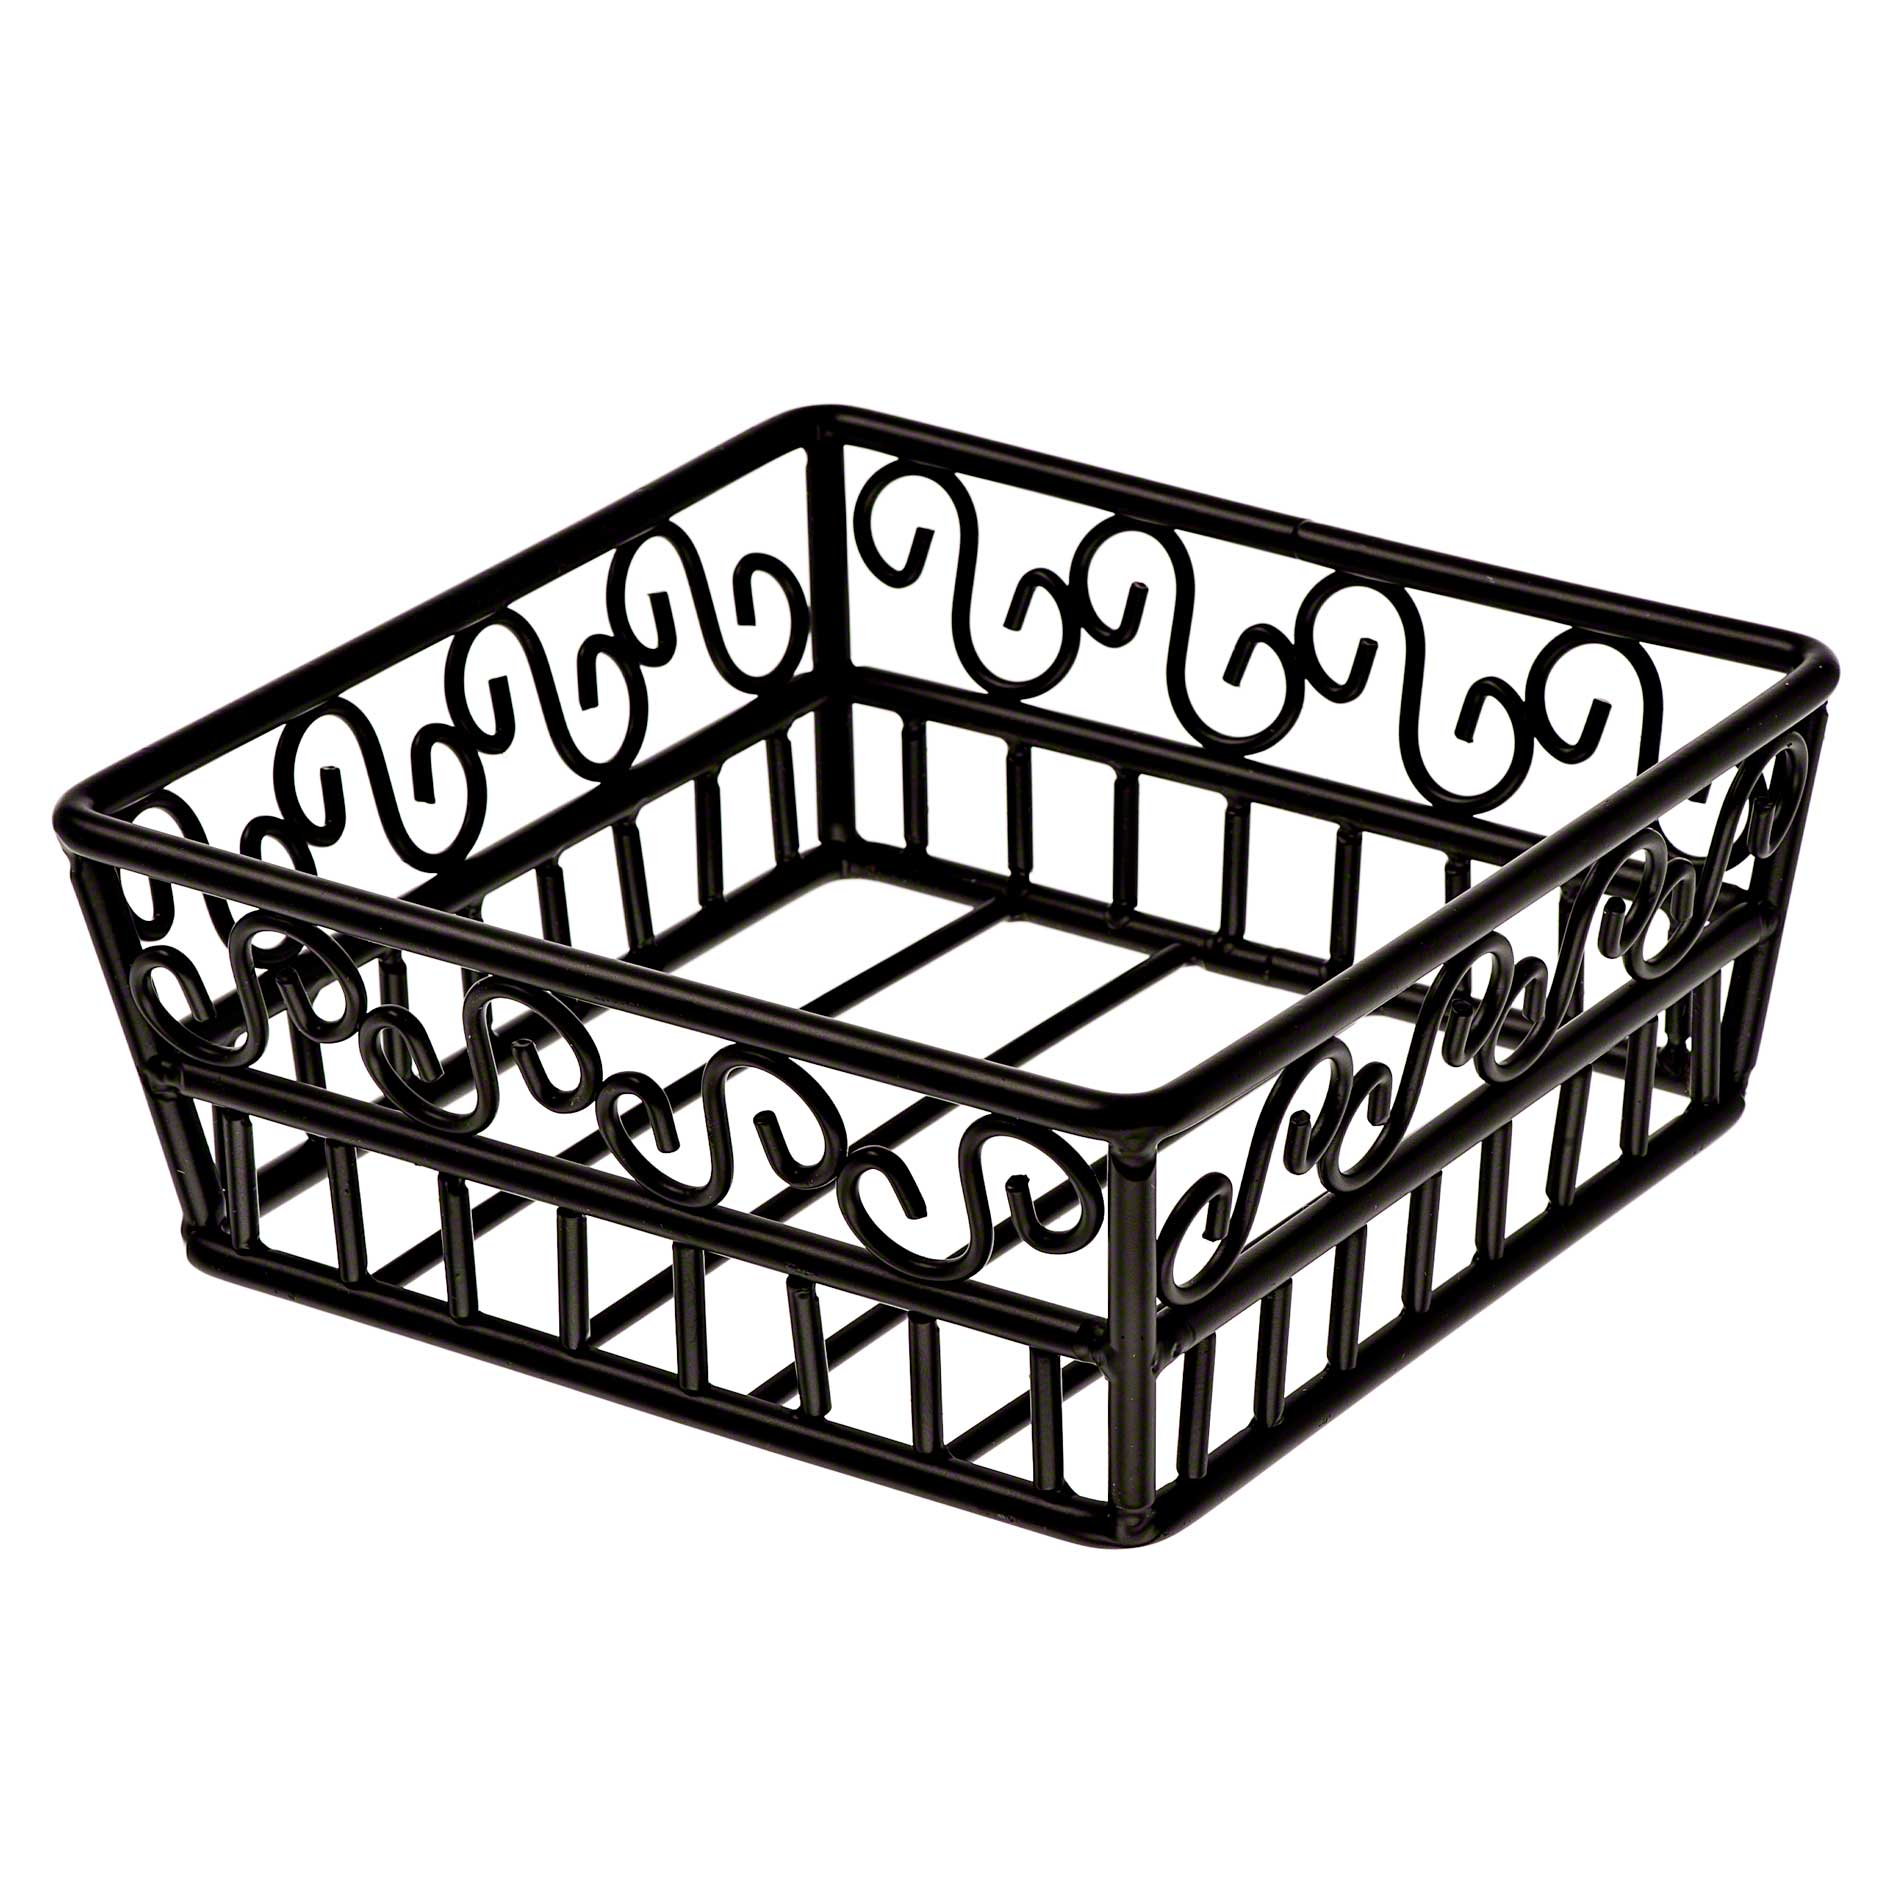 American Metalcraft - SBS70 Wrought Iron Square Basket w/Scroll Design